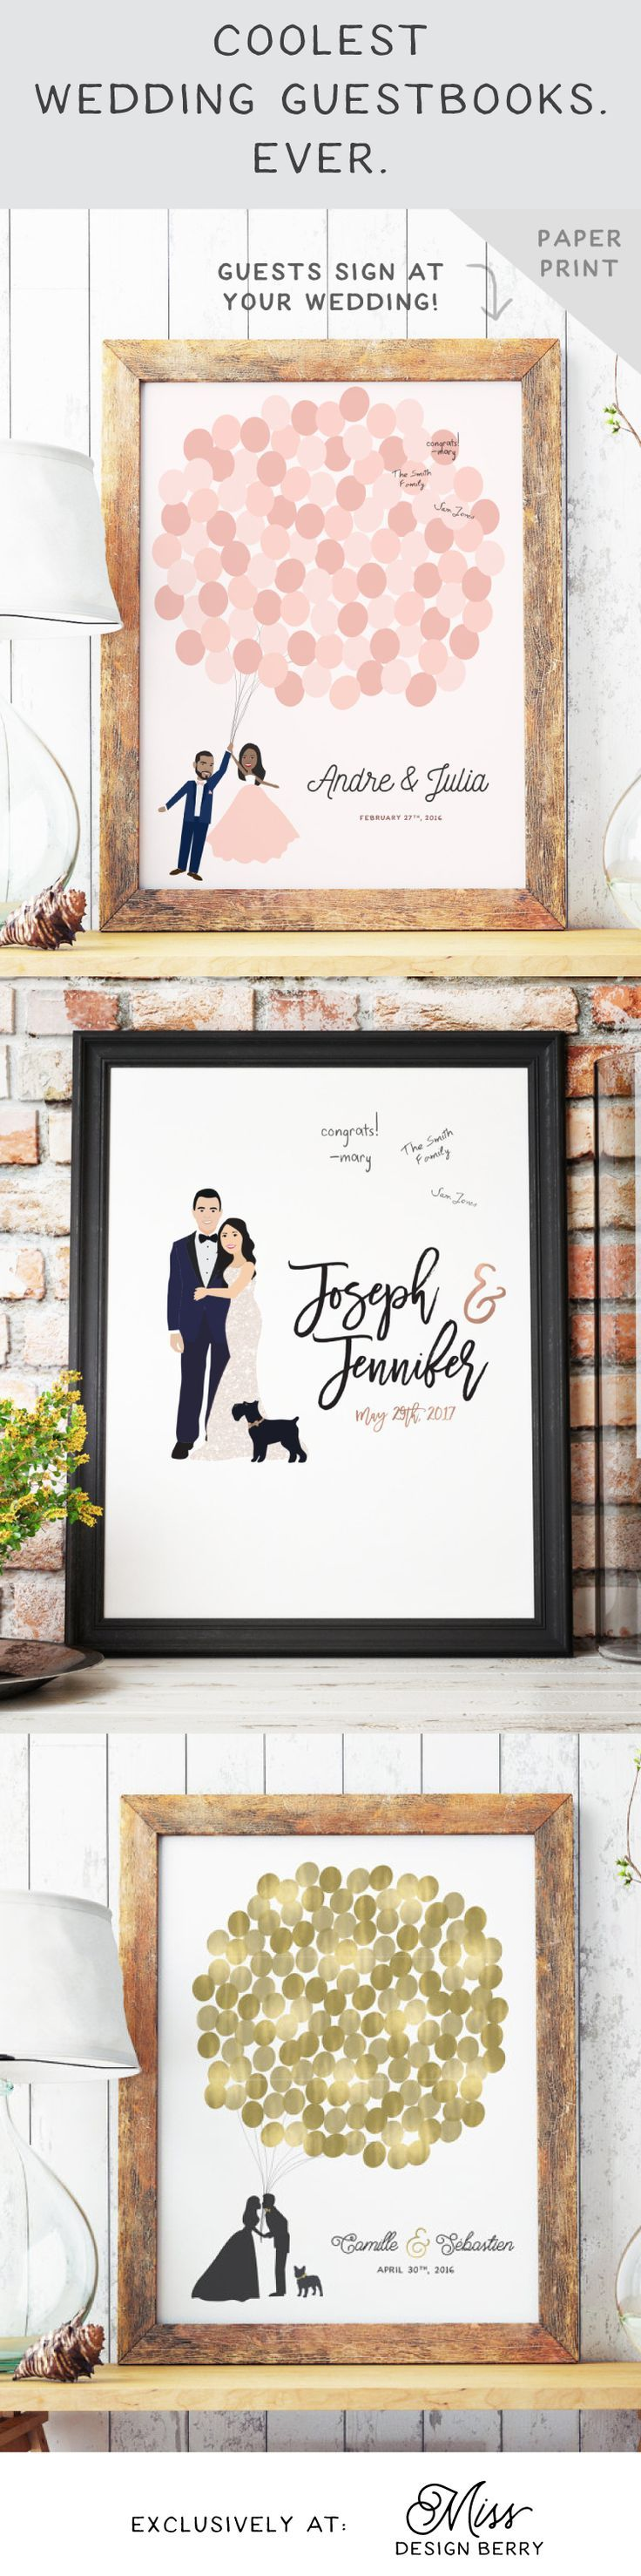 The coolest wedding guestbooks. Ever.   Shop now at Miss Design Berry. Rockwell Catering and Events